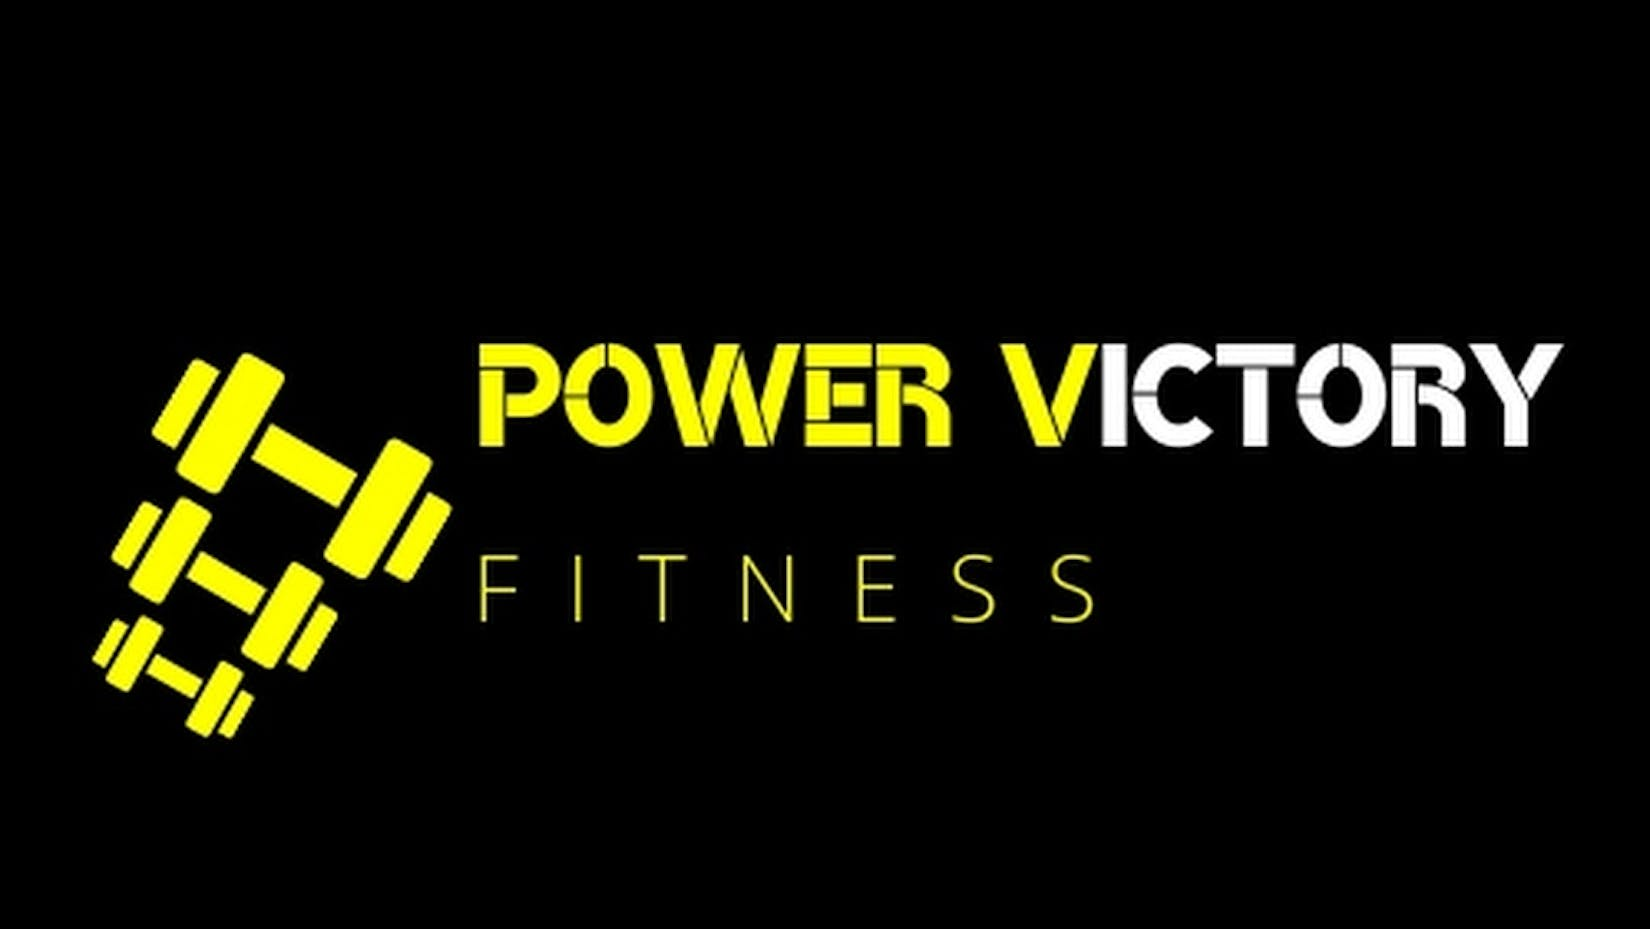 Power Victory Fitness | Beauty